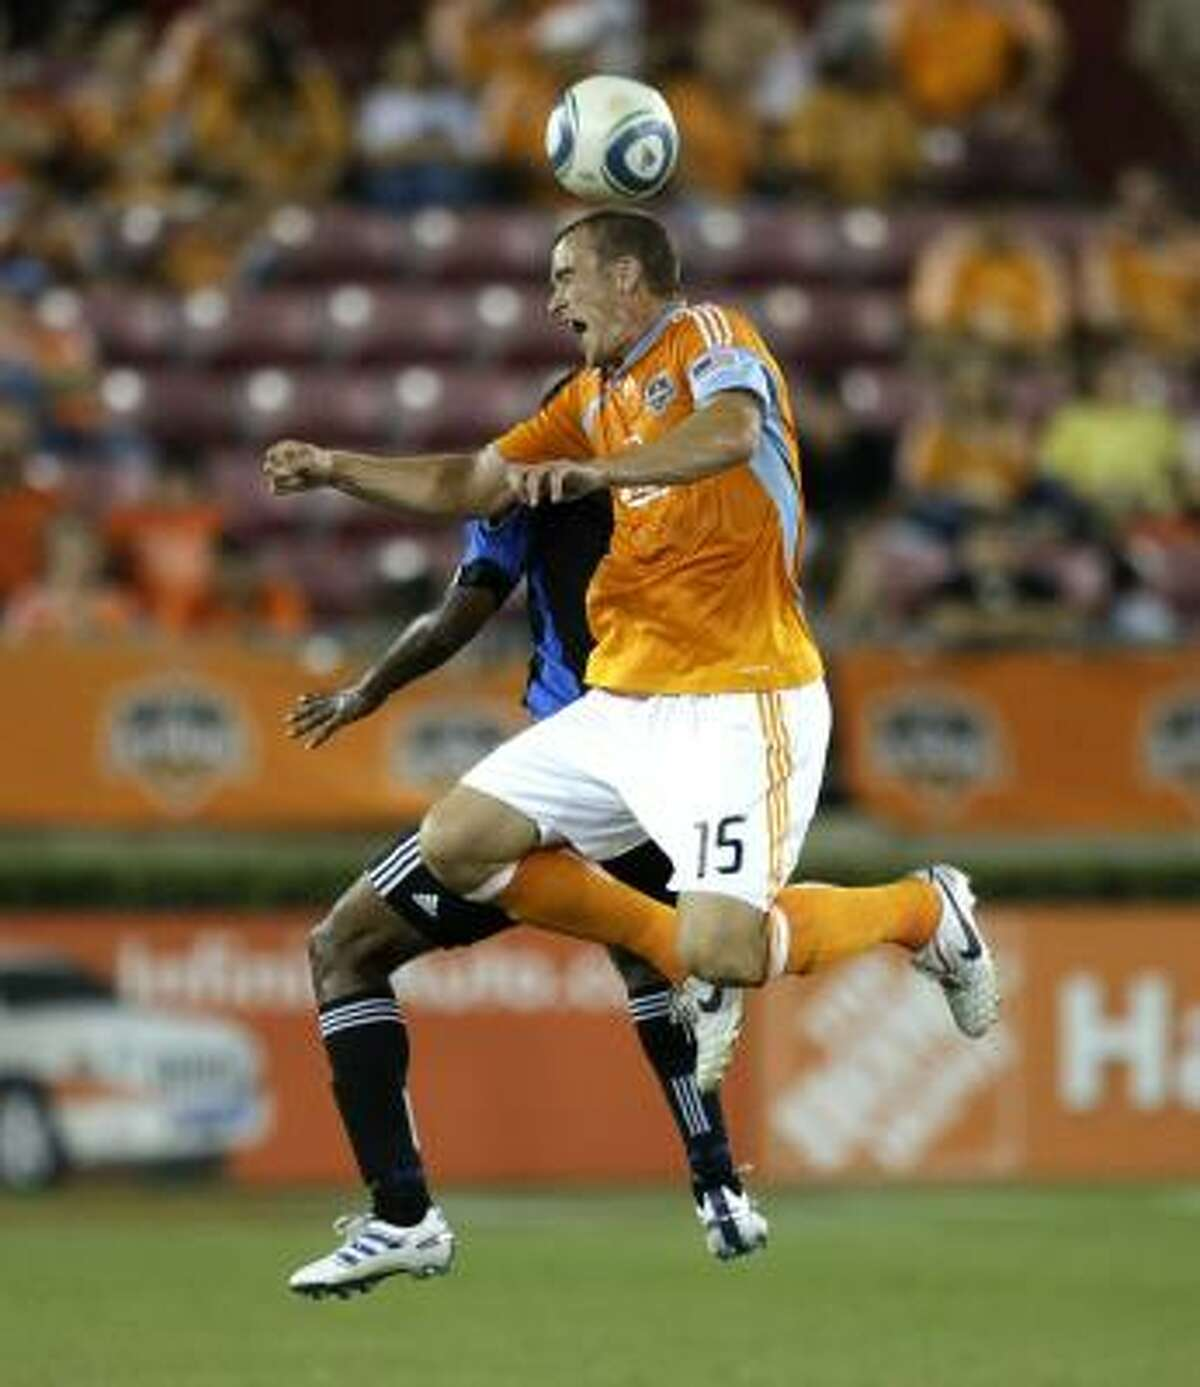 Cam Weaver goes up for a header against an Earthquakes player.